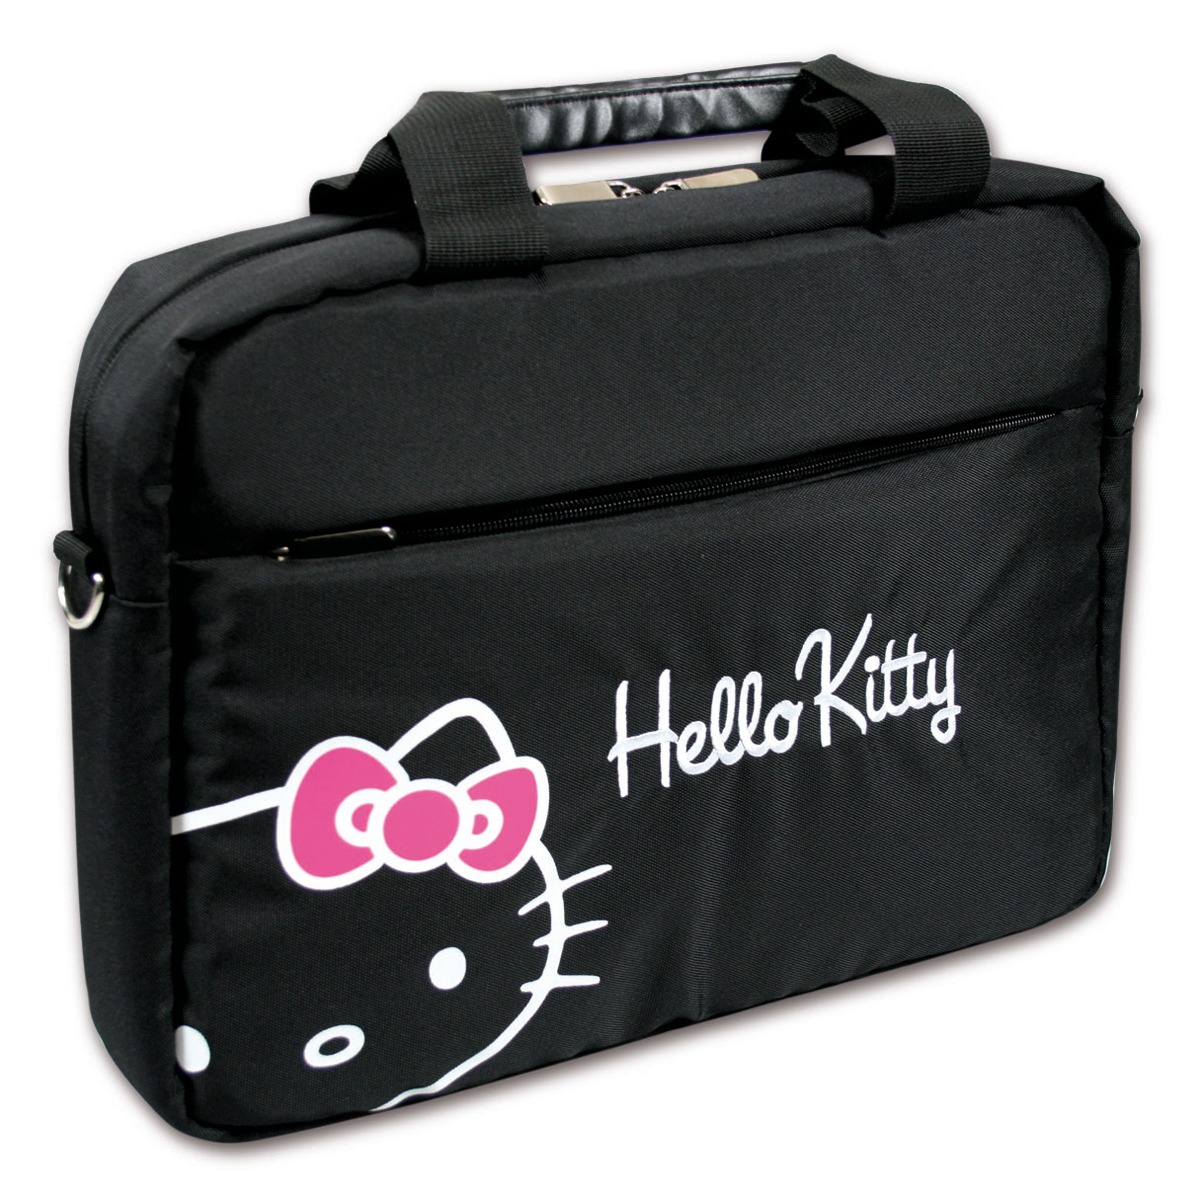 Port designs hello kitty bag 13 3 noir sac sacoche for Housse ordinateur portable originale